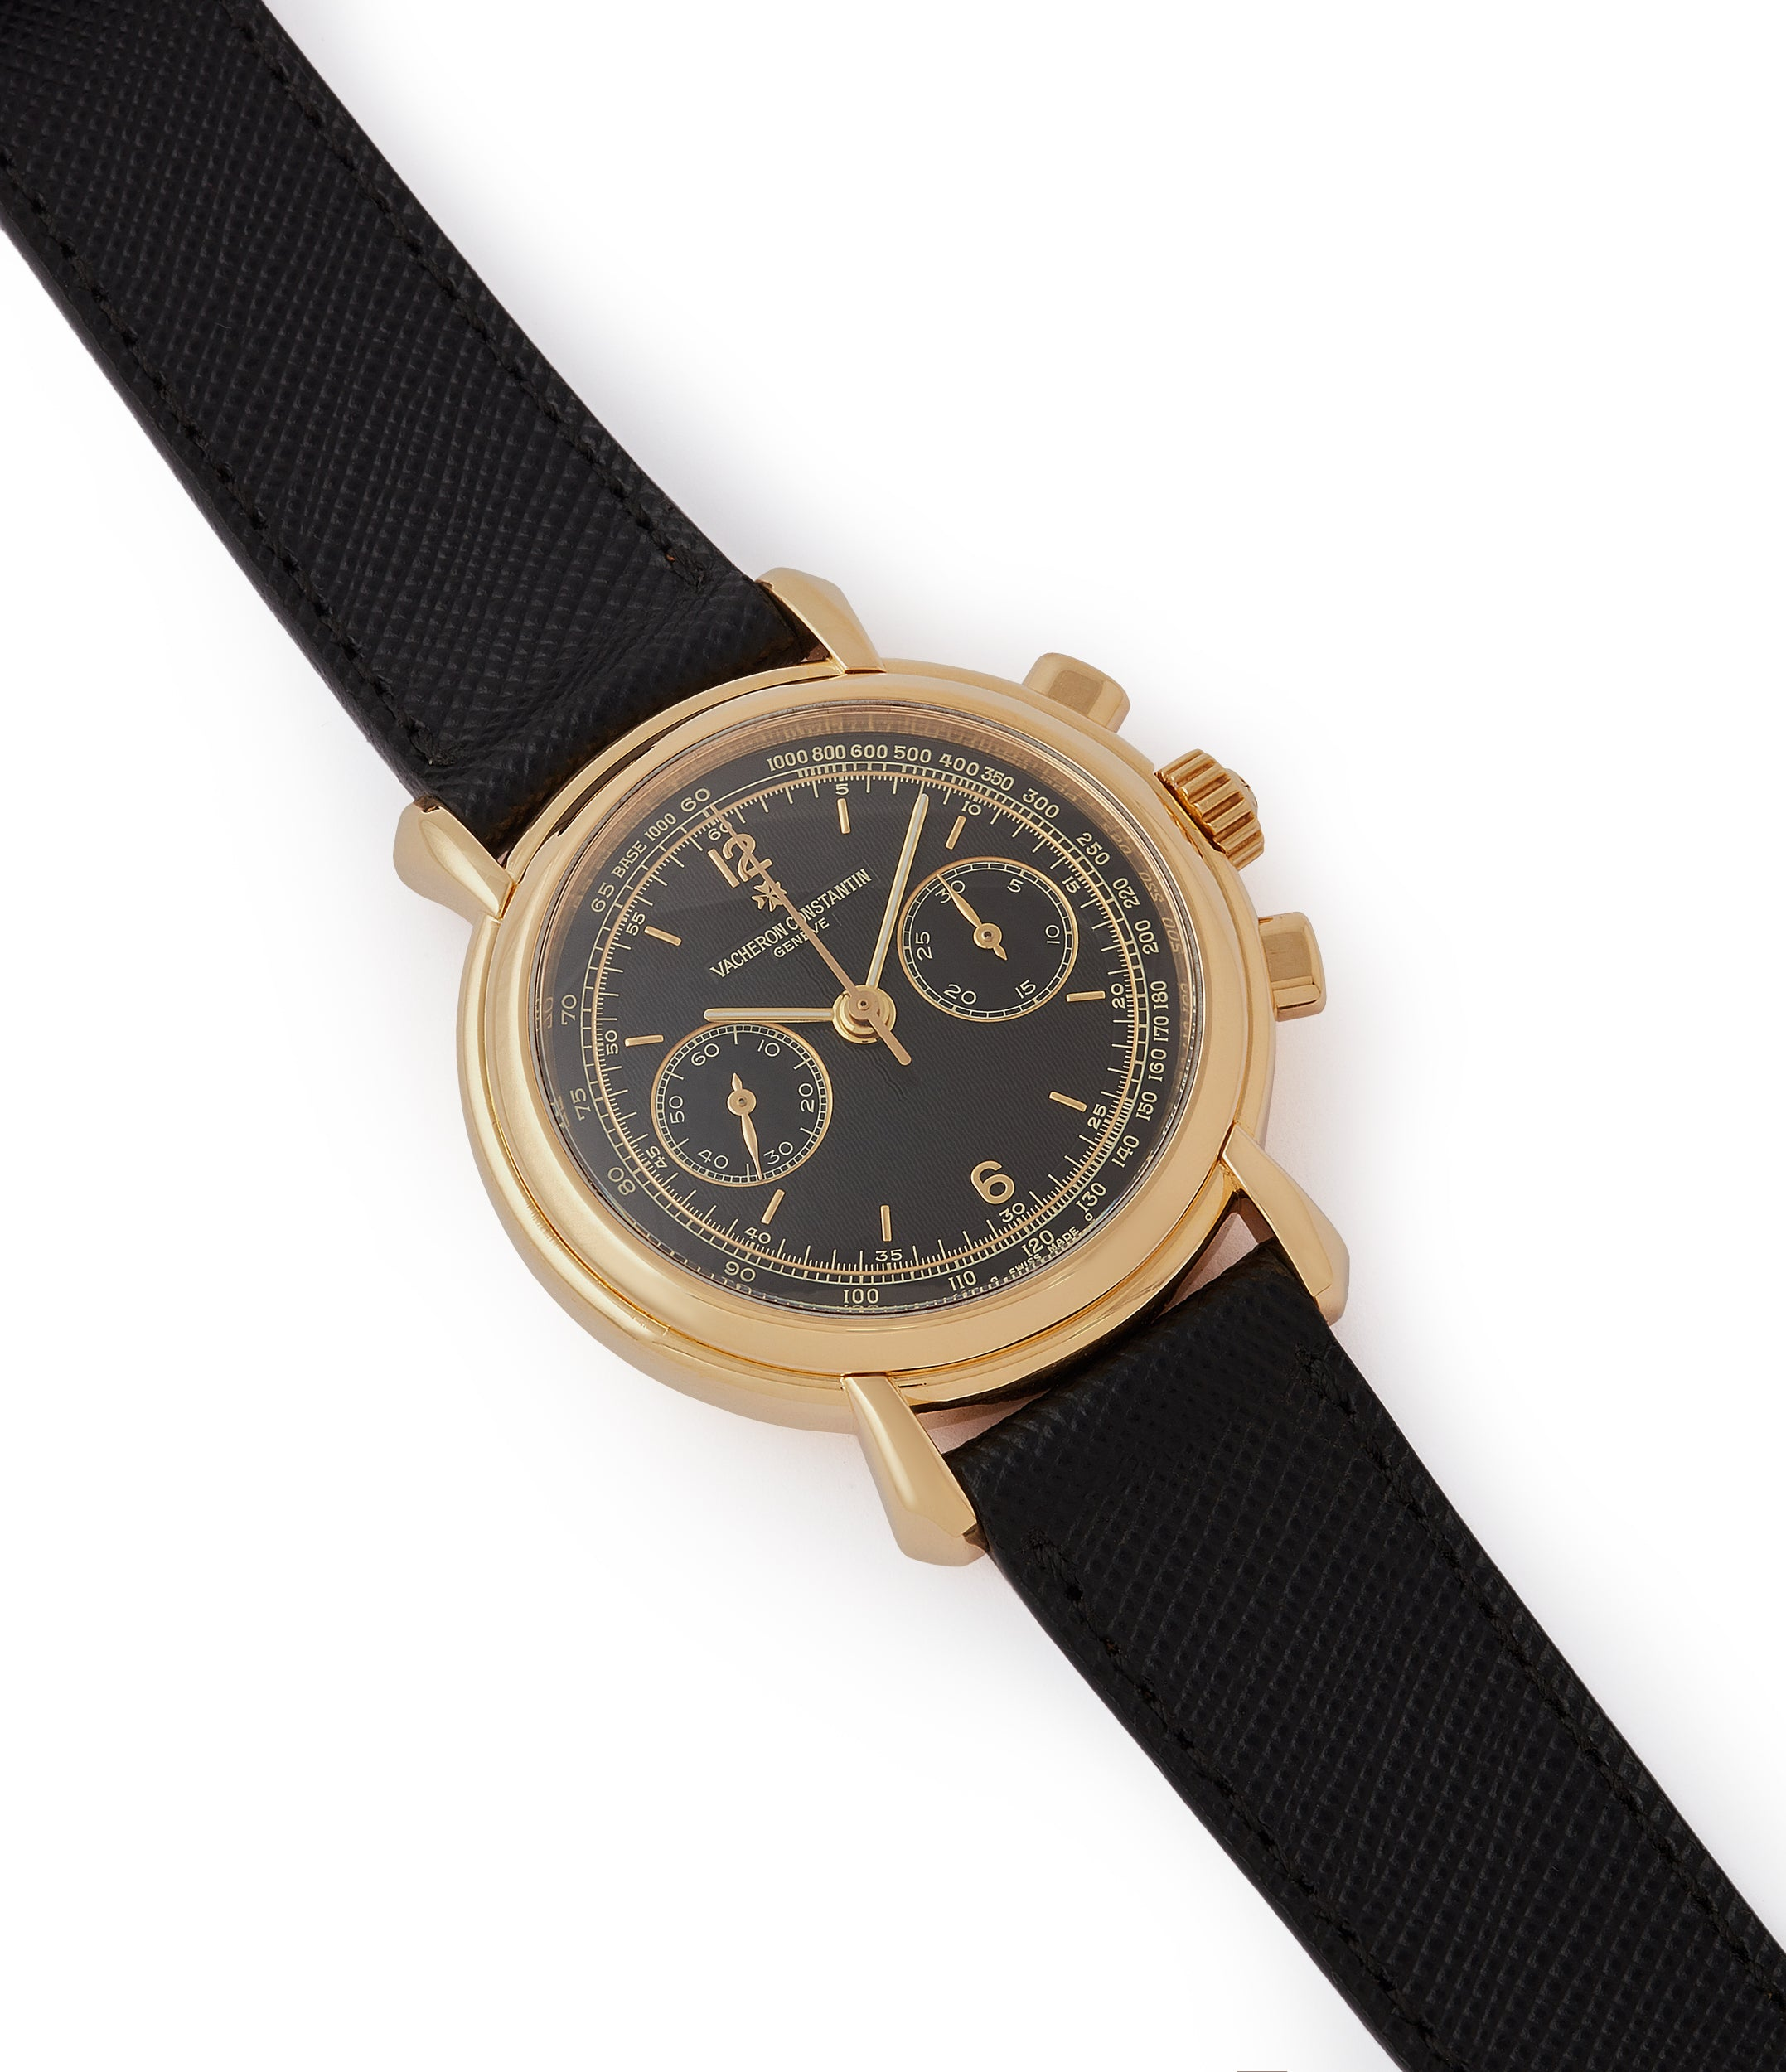 sell Vacheron Constantin Les Historiques Chronograph 47101/4 yellow gold black dial pre-owned manual-winding watch for sale online at A Collected Man London UK specialist of rare watches